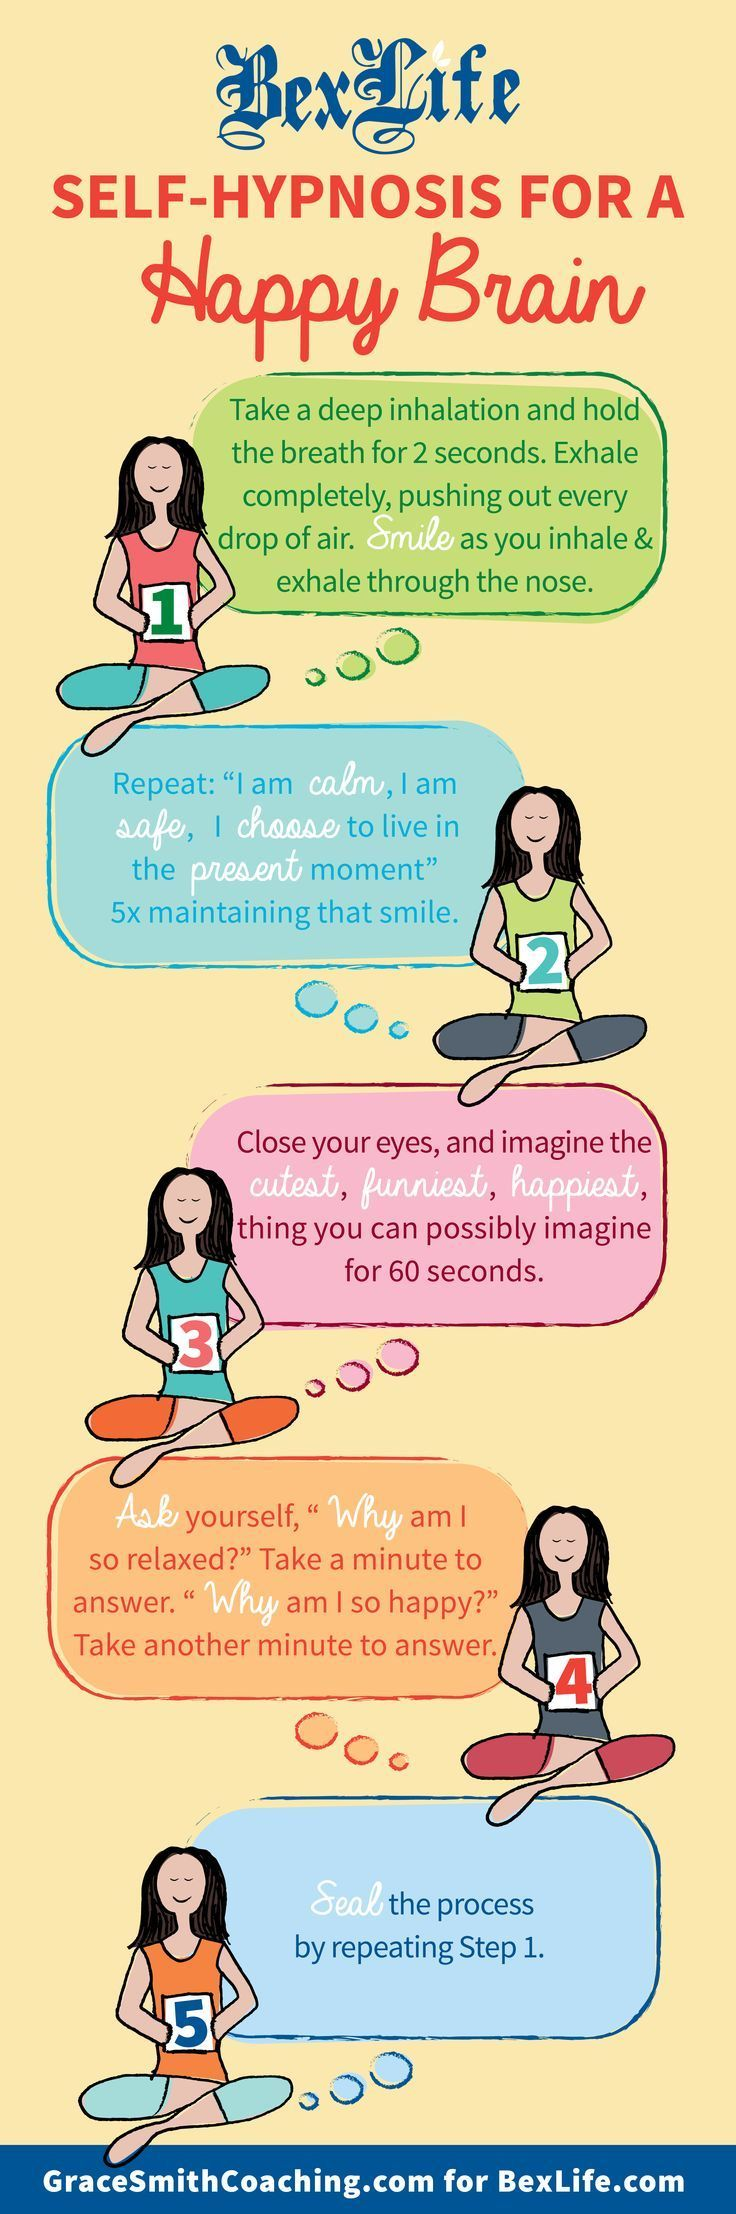 More of a nice guided centering rather than self-hypnosis, refreshingly simple! Simple mindful breathing exercise to reduce stress